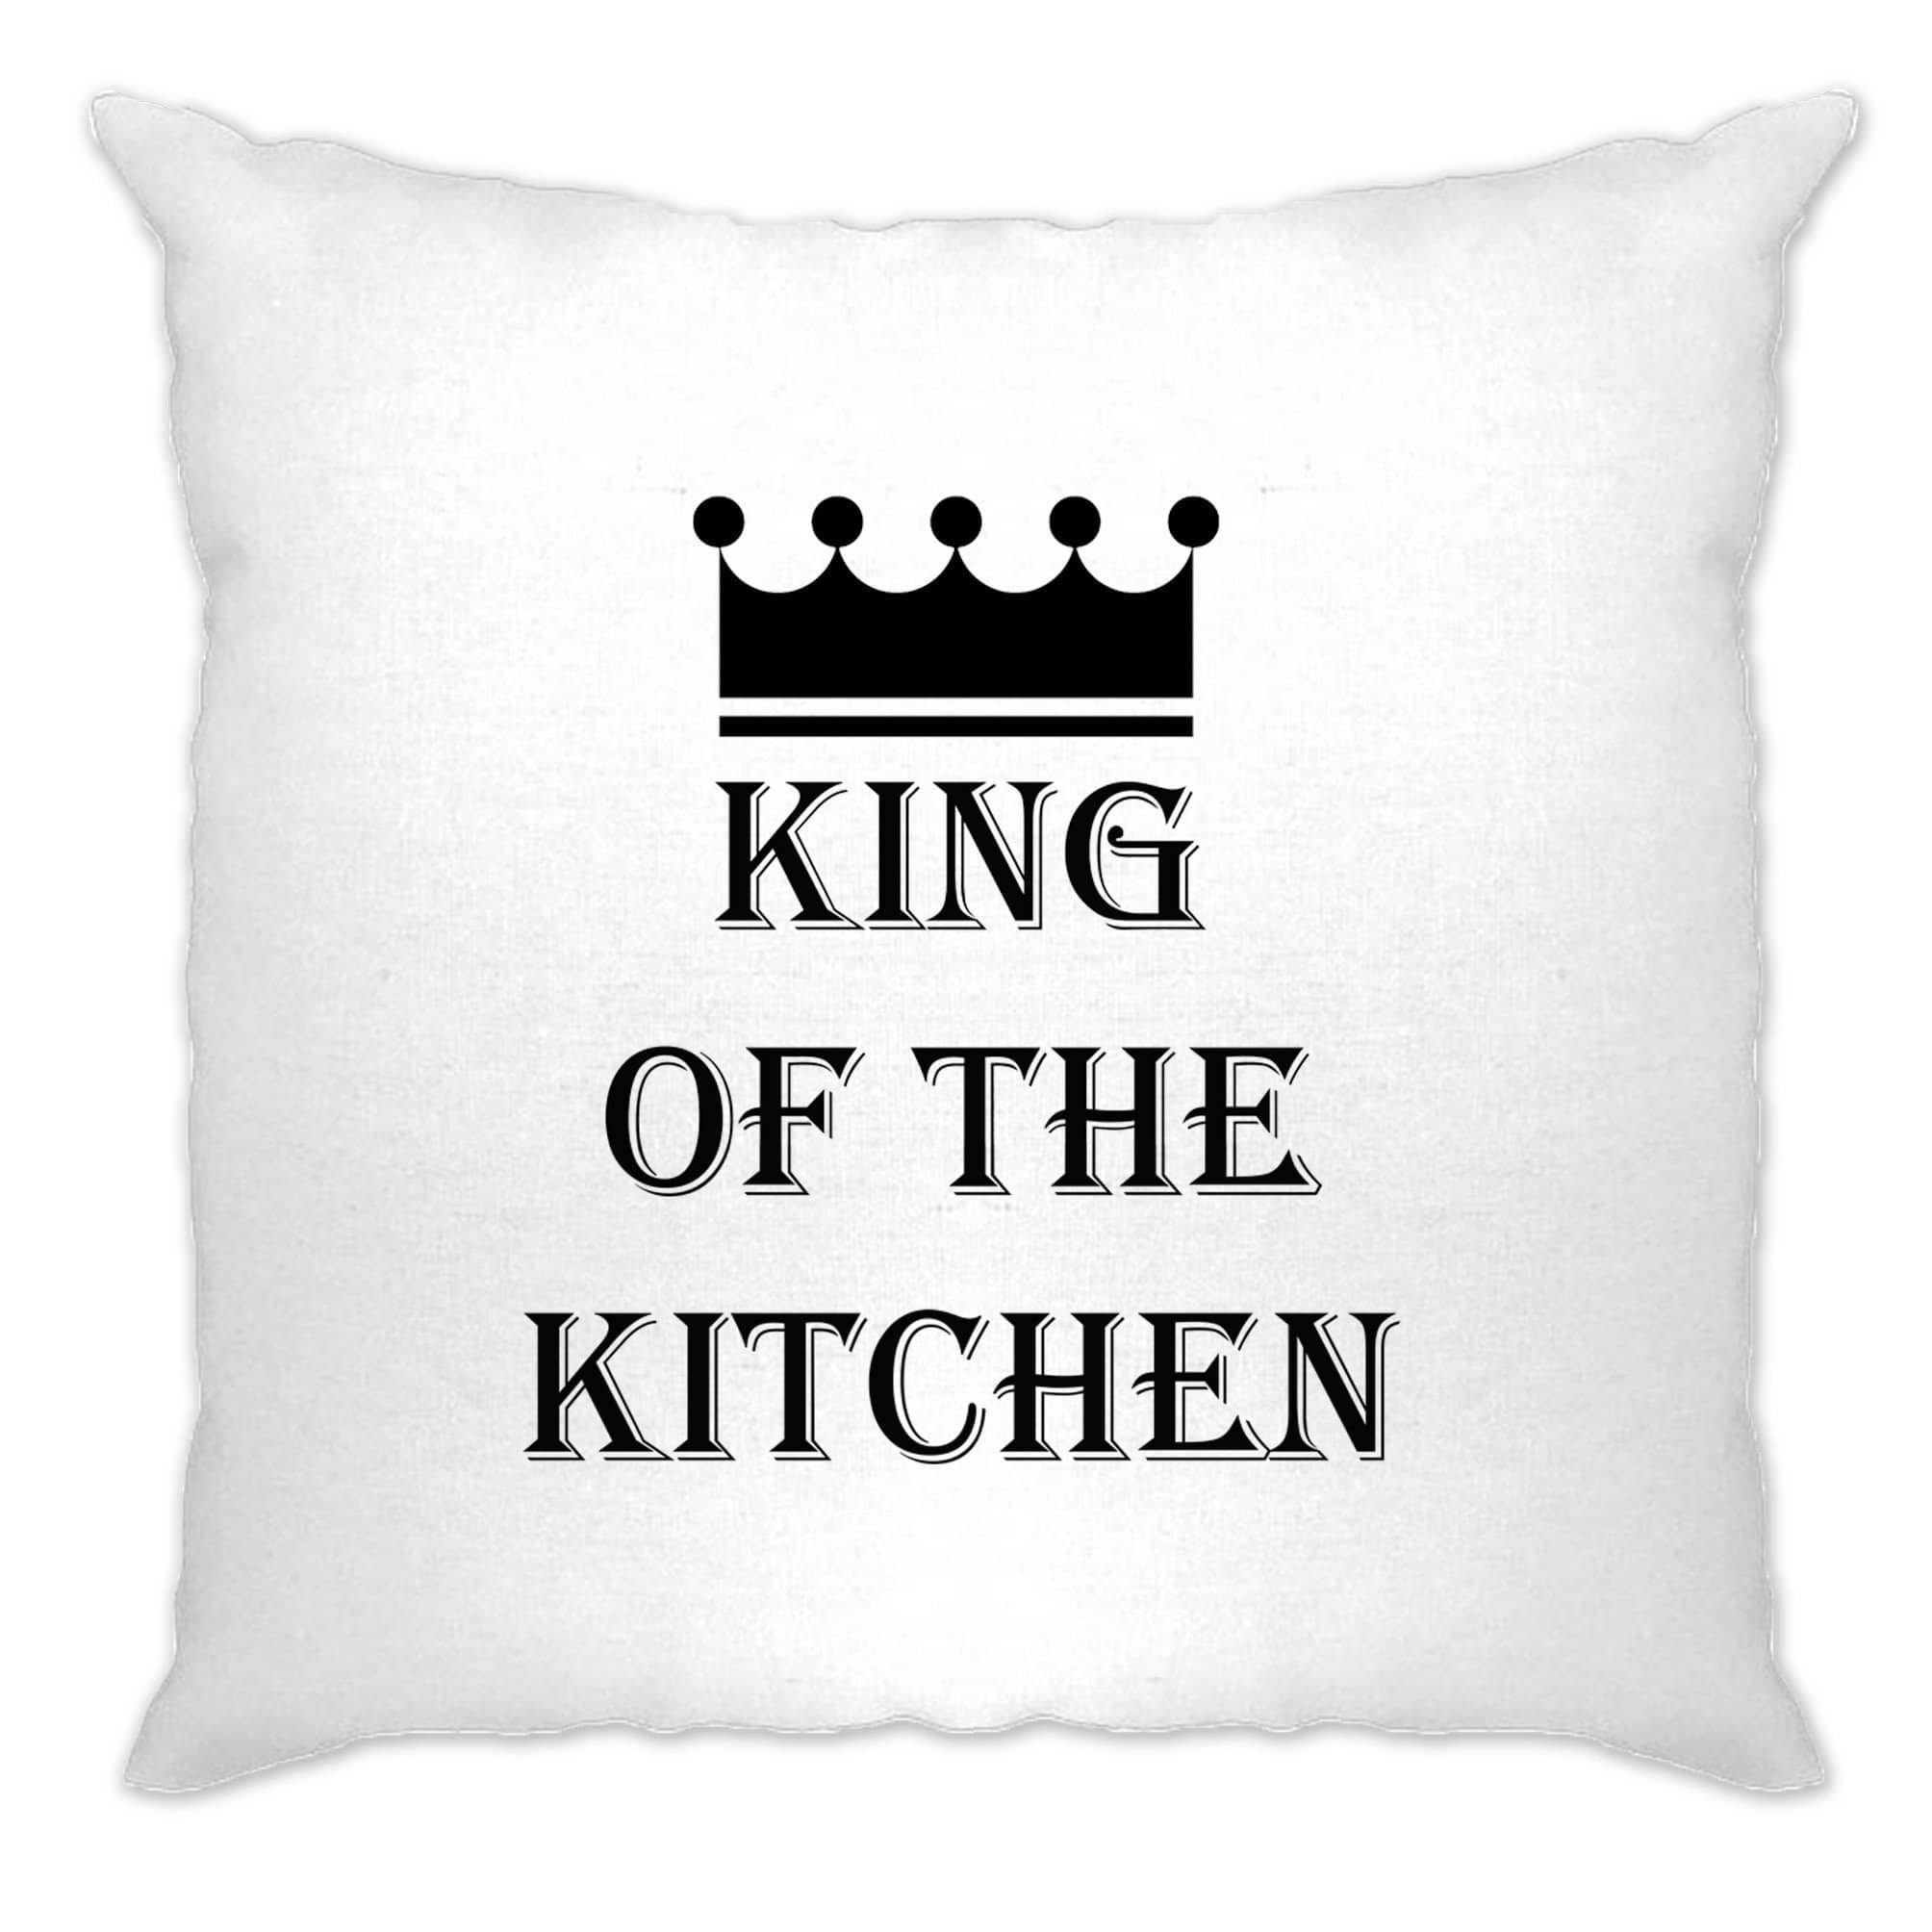 Chef's Cooking Cushion Cover King Of The Kitchen Slogan